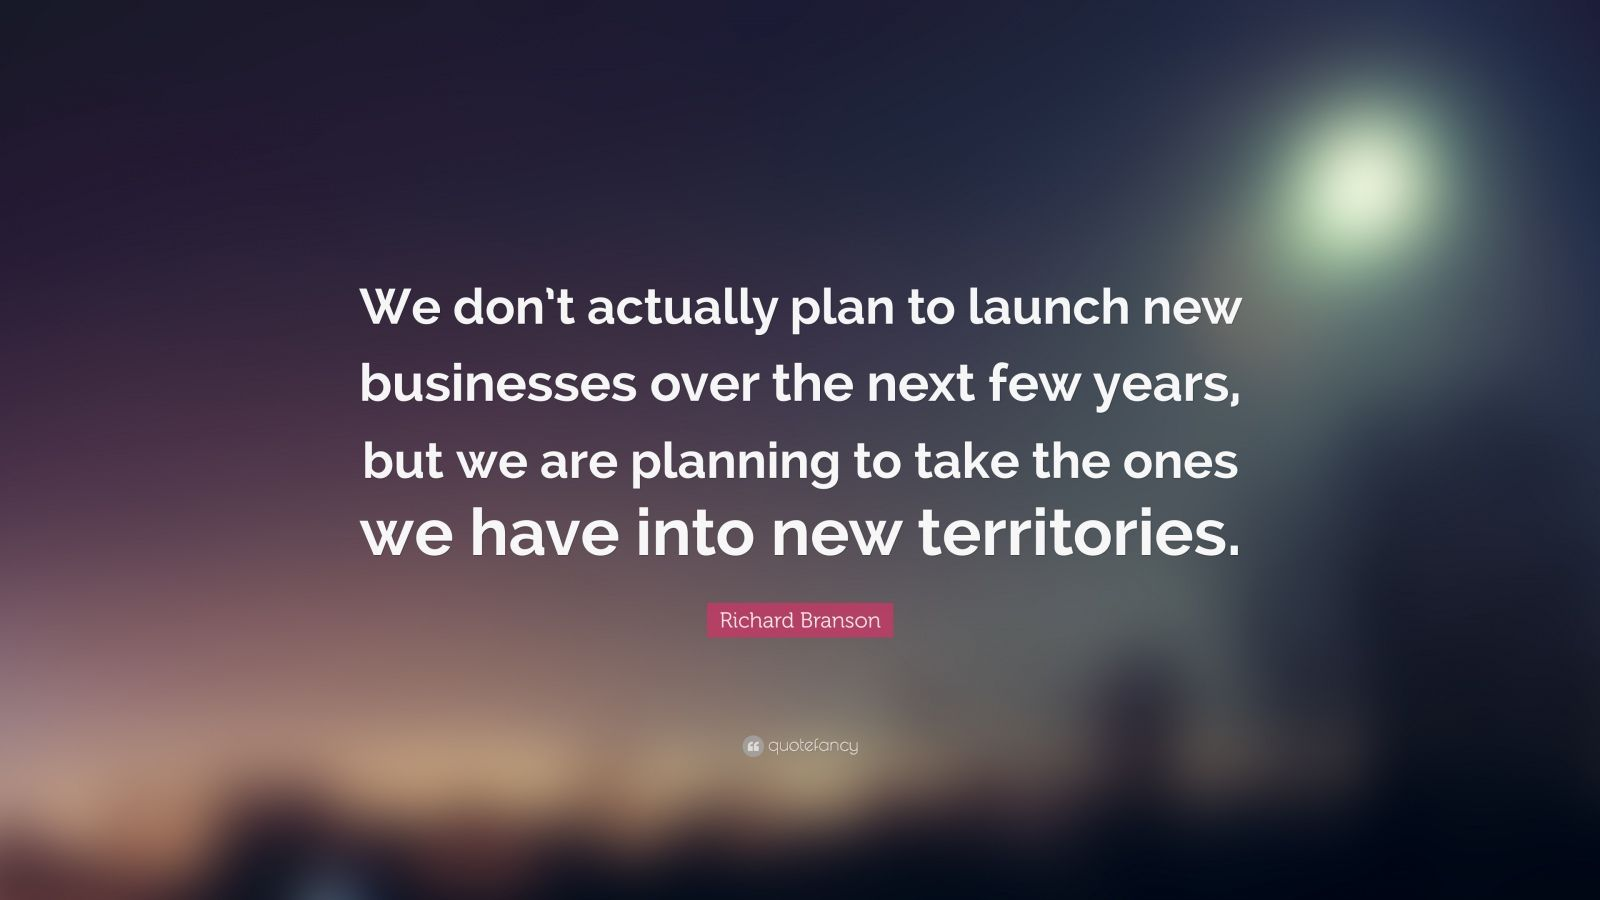 """Richard Branson Quote: """"We don't actually plan to launch new businesses over the next few years, but we are planning to take the ones we have into new territories."""""""